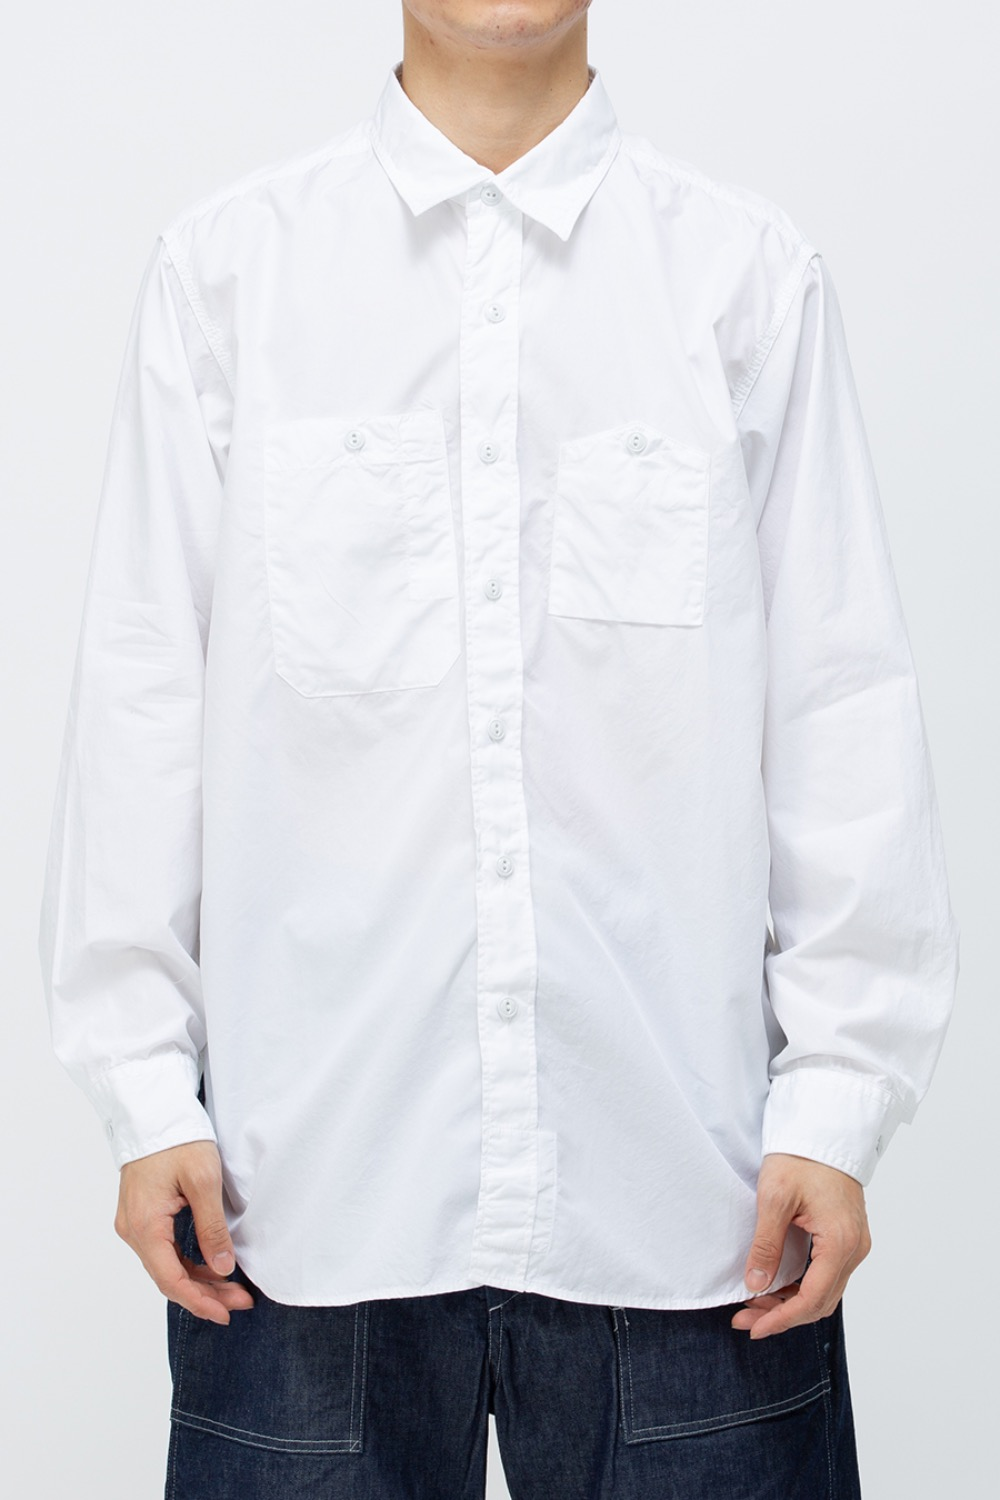 WORK SHIRT 100's 2PLY BROADCLOTH WHITE